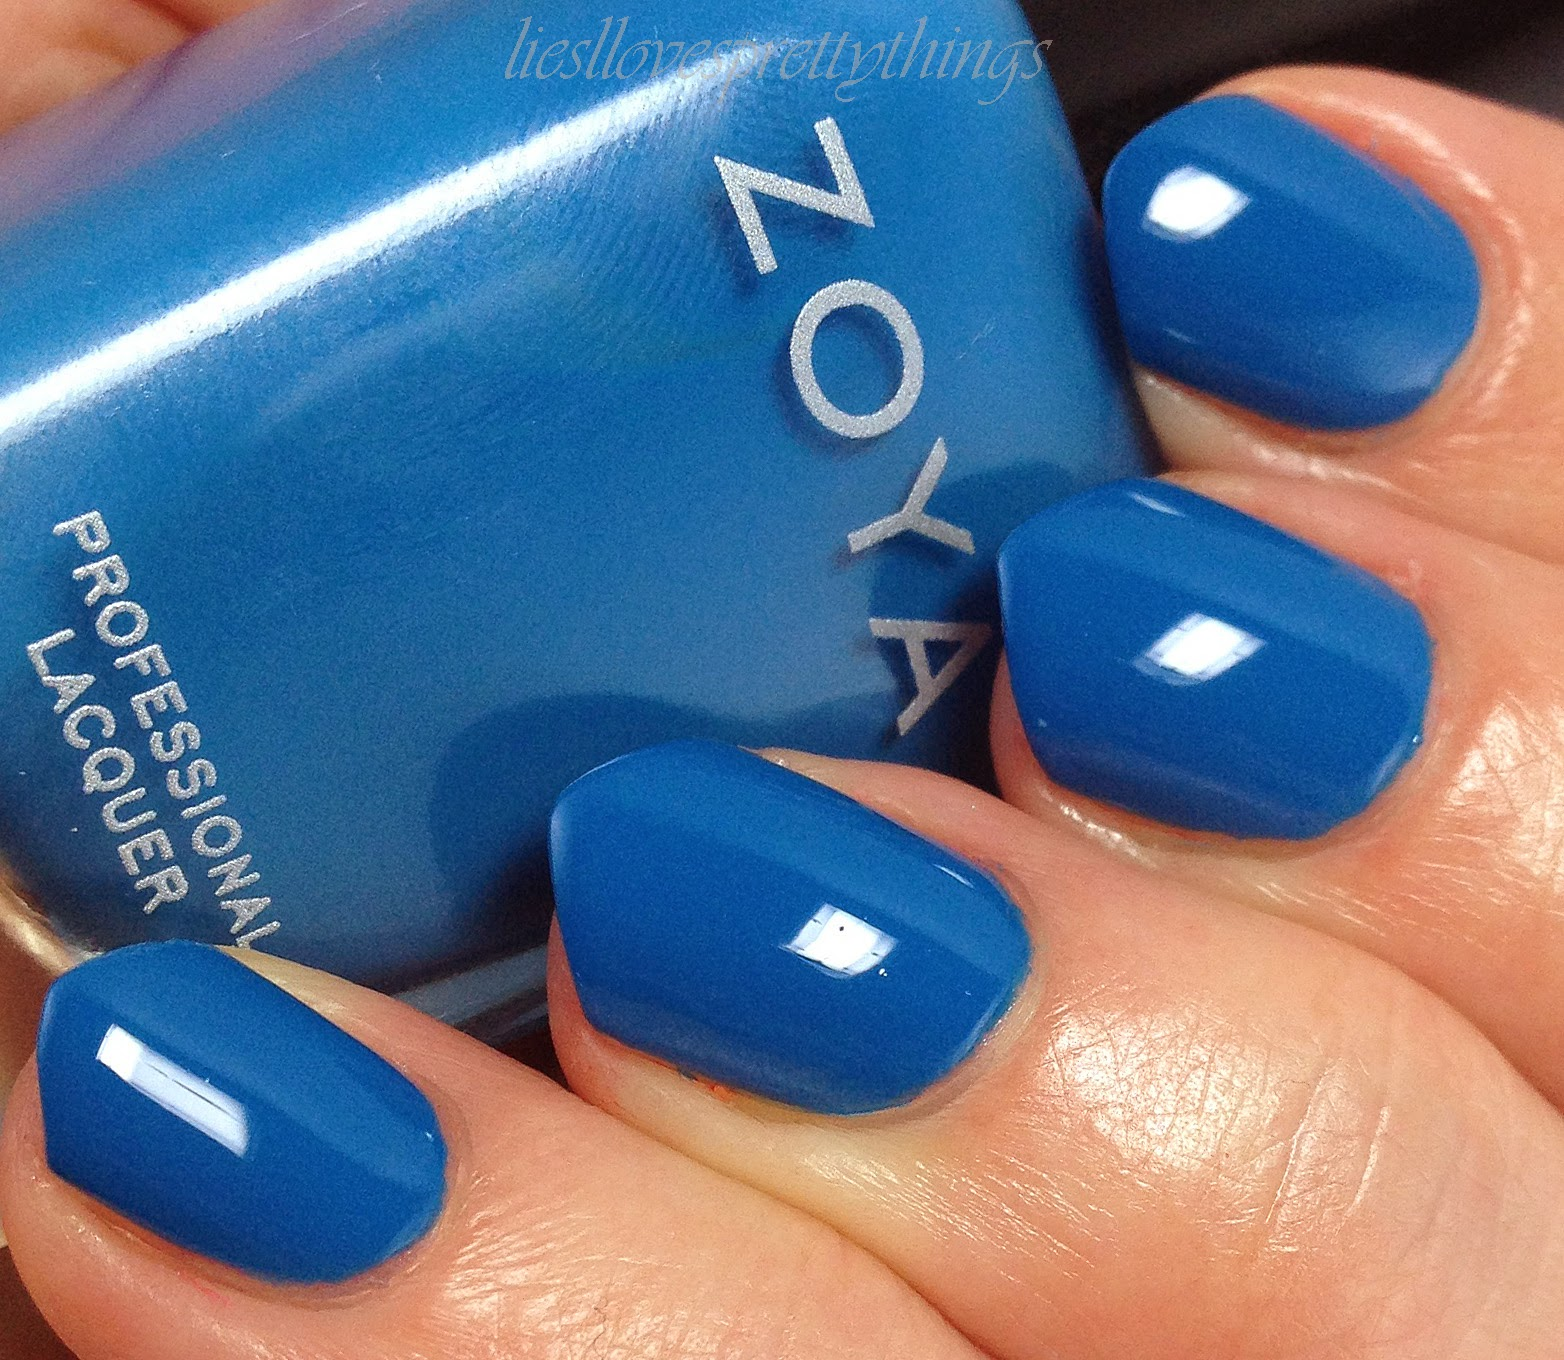 Zoya Ling swatch and review